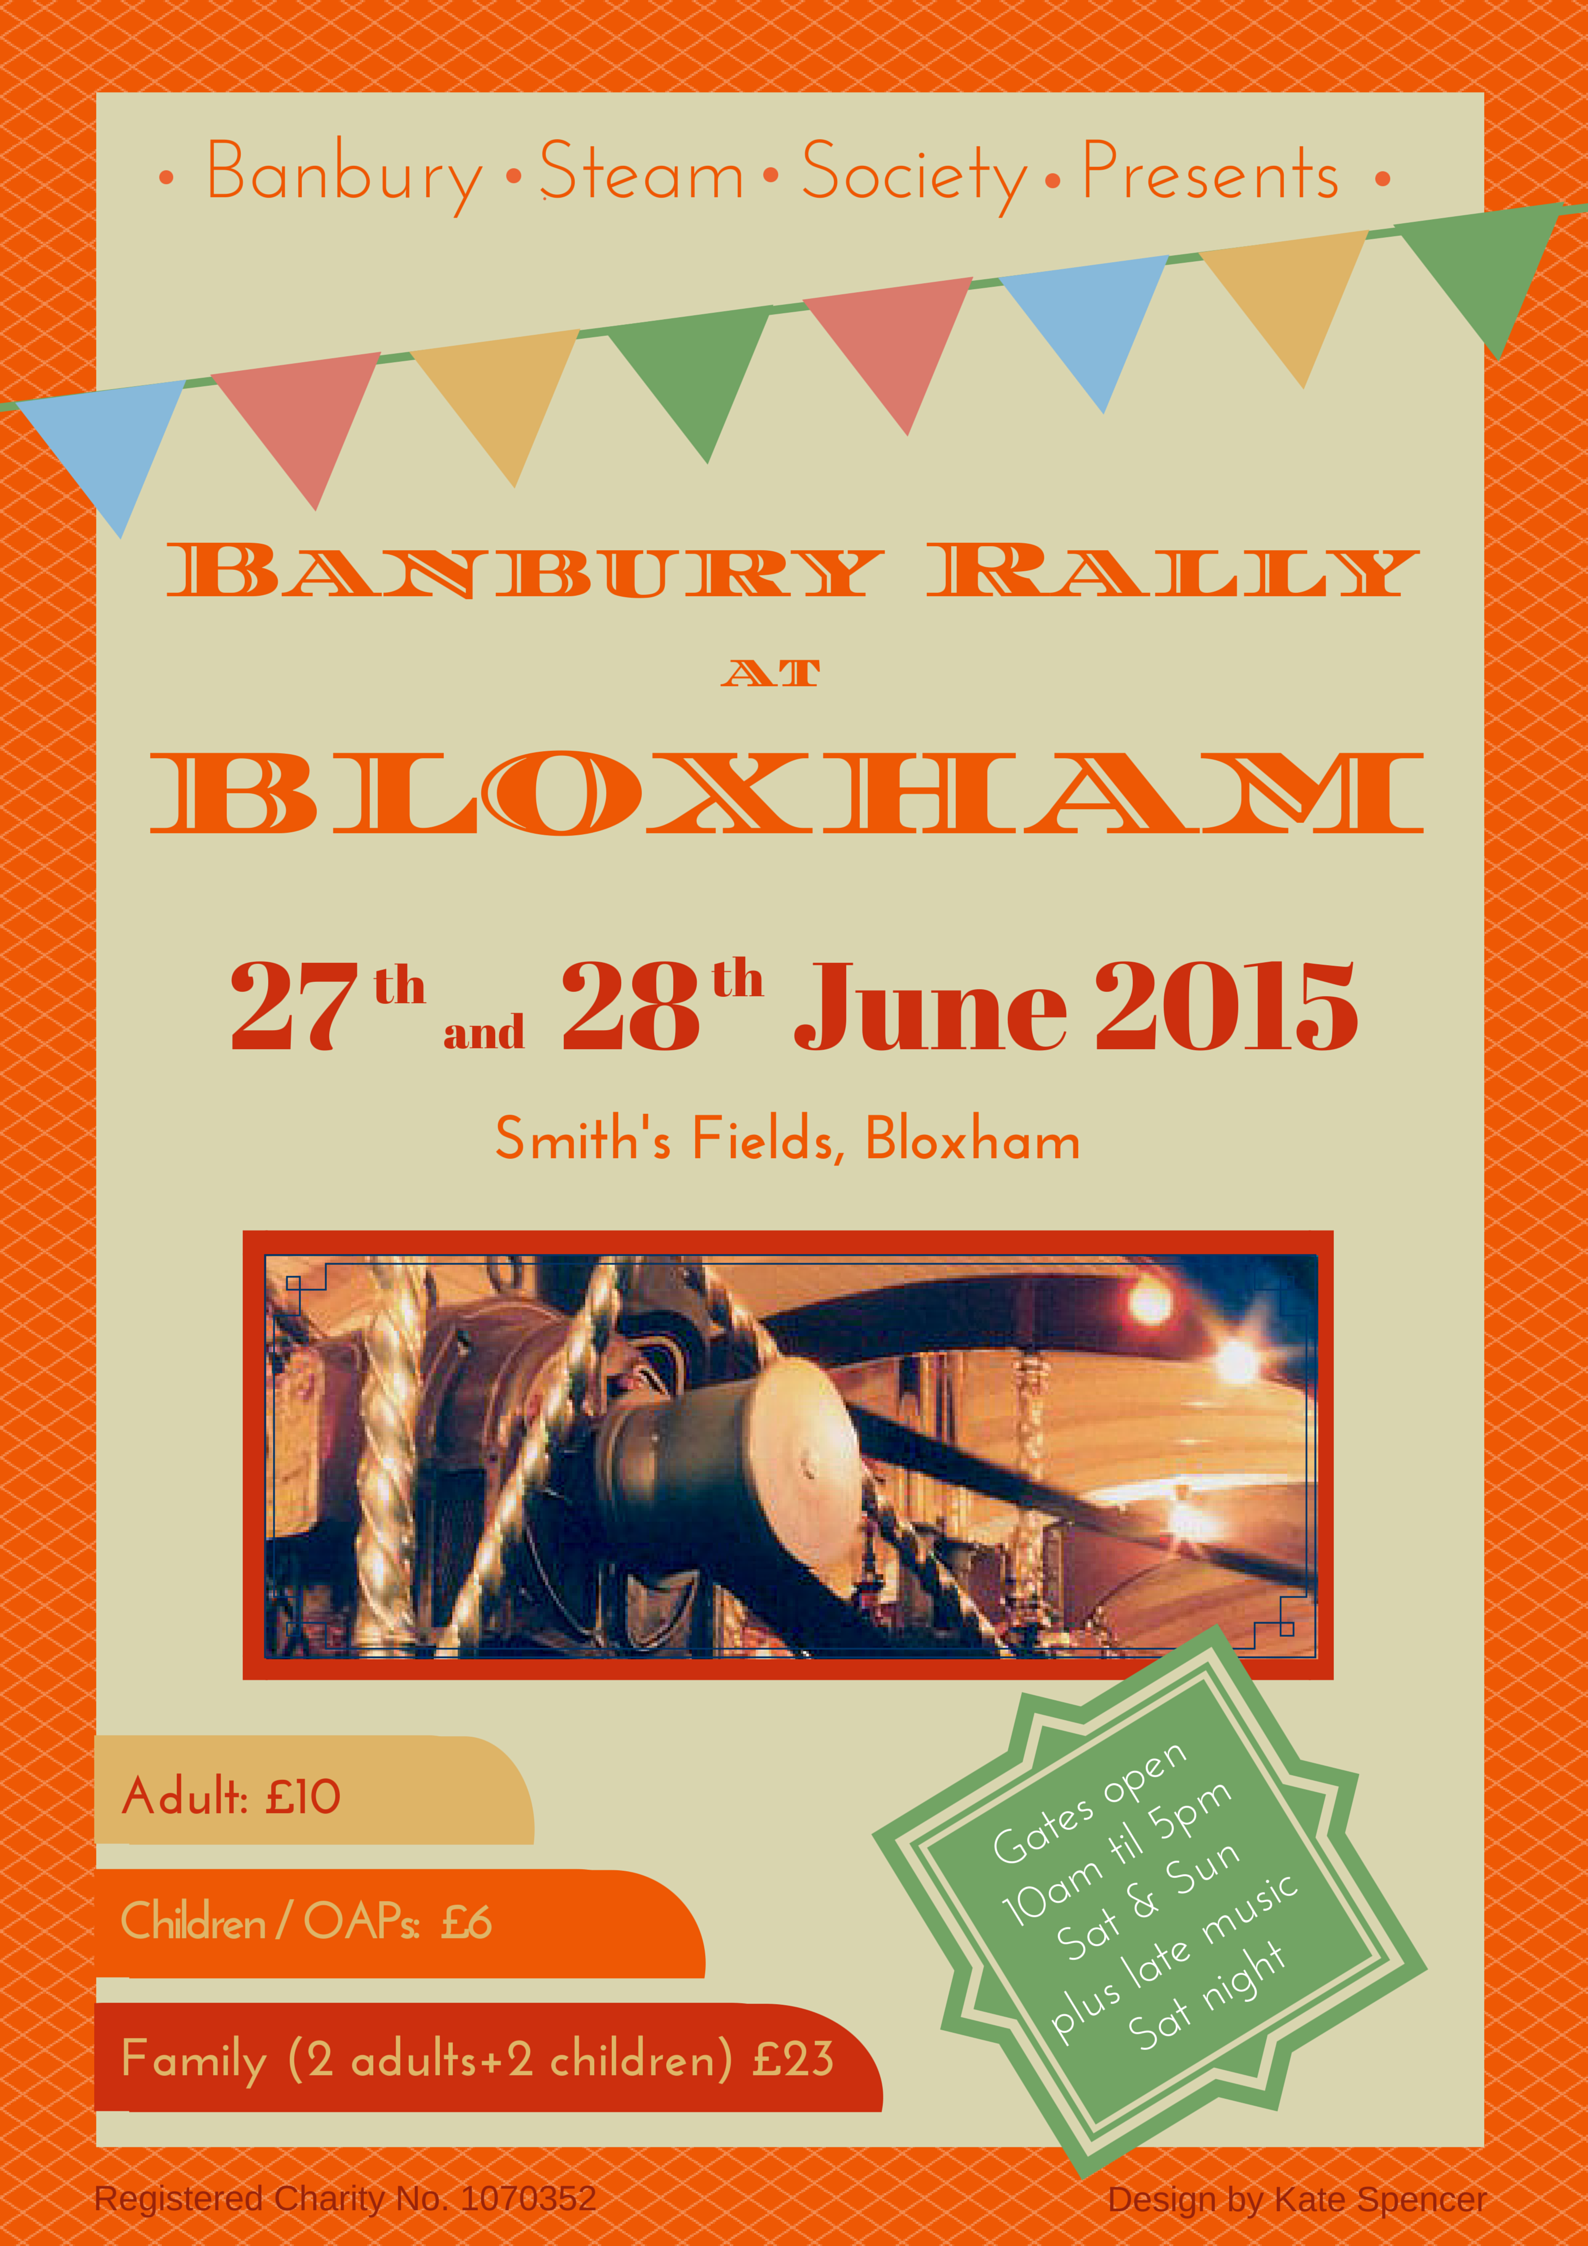 Full Steam Ahead for Banbury Rally at Bloxham! Banbury Steam Society's popular steam and vintage rally will be held on the weekend of the 27th & 28th June 2015, at the usual site - Smiths fields, Milton Road near Bloxham, Oxfordshire  Attractions include:  Fun fair Steam engines Classic cars Fairground organs  Crafts & market area Live entertainment from Dr Busker and Junction Falconry displays Red Dragon Monster Truck rides Lawnmower racing Classic motorbikes Sheep show Beer tent And more!